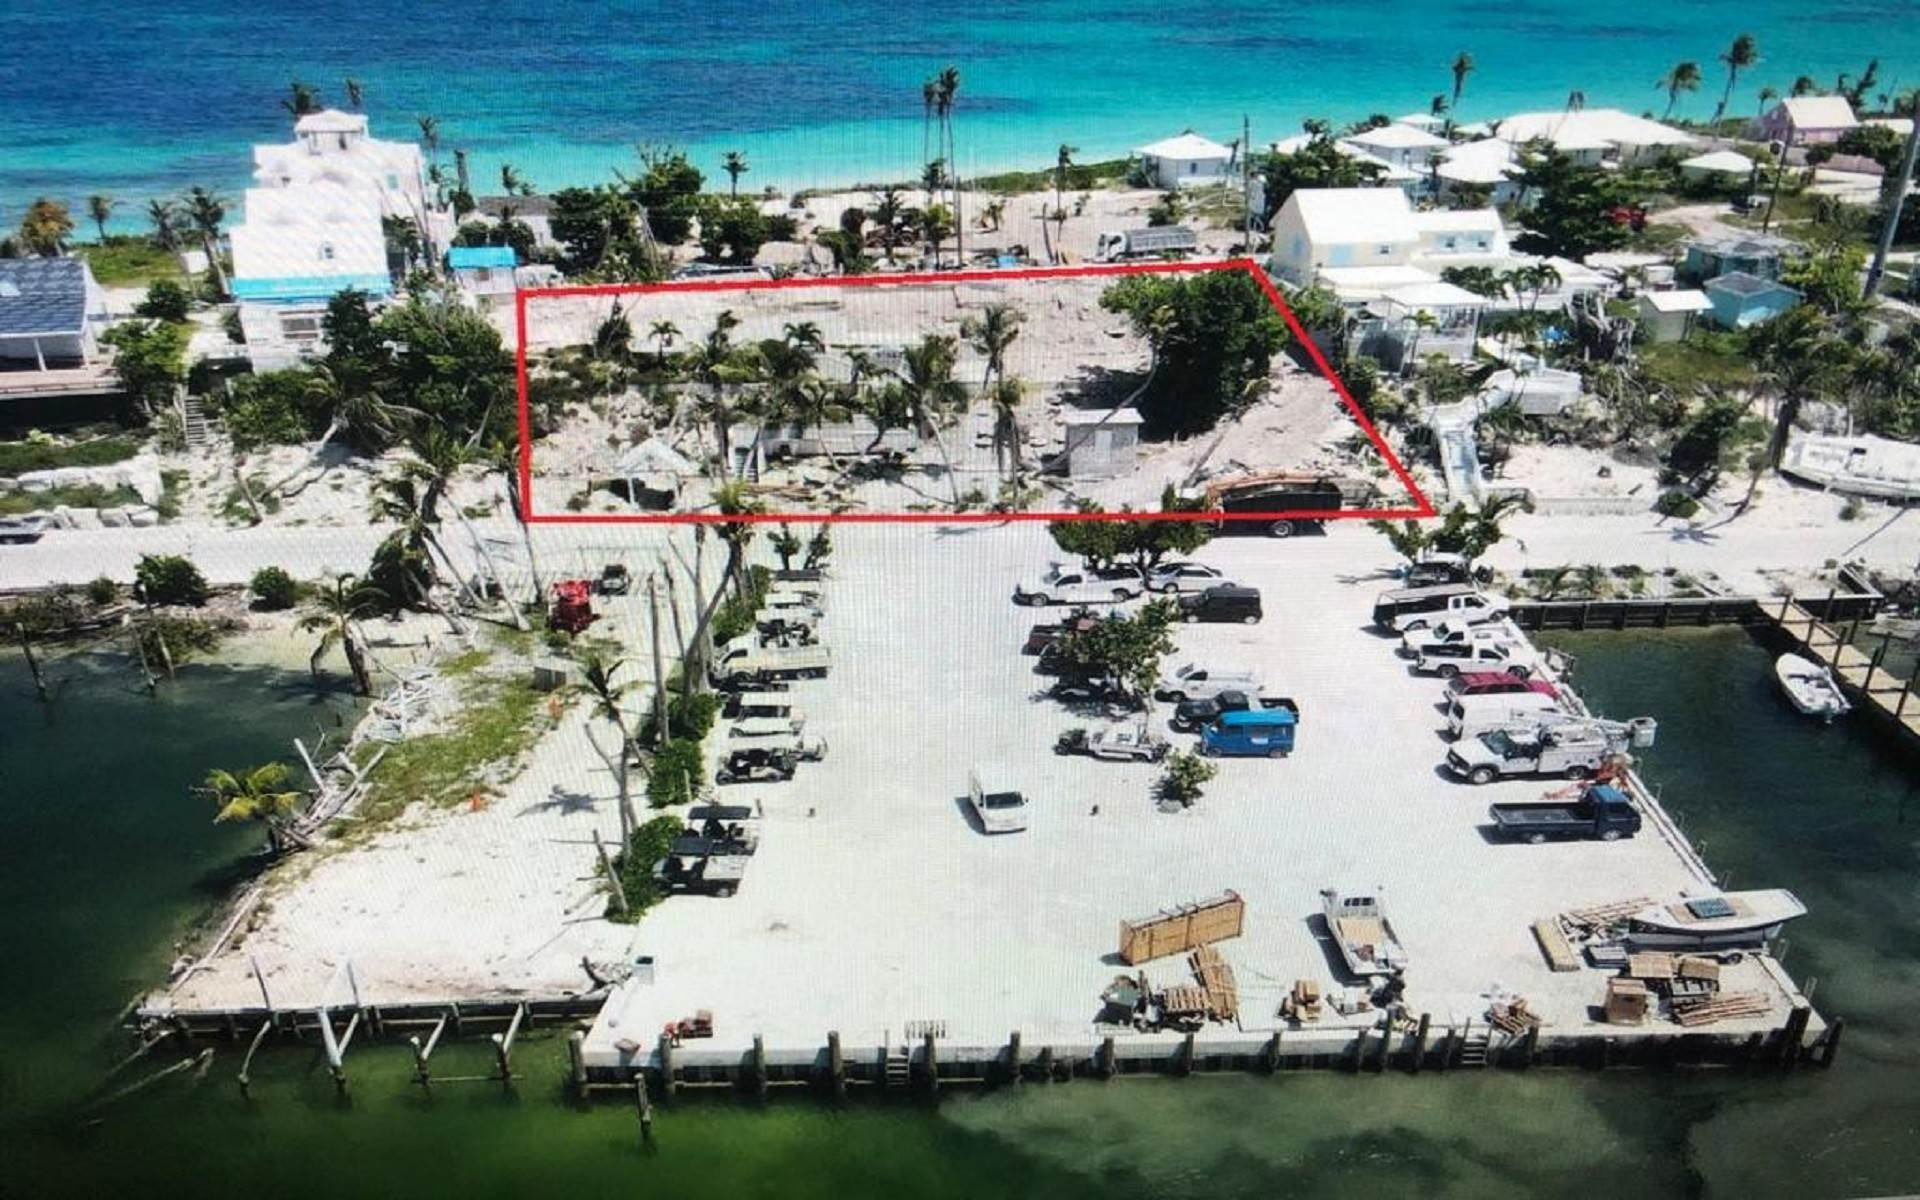 Terreno por un Venta en Glorious Harbour view land in Hope Town with dock & beach access - MLS 41817 Elbow Cay Hope Town, Abaco, Bahamas